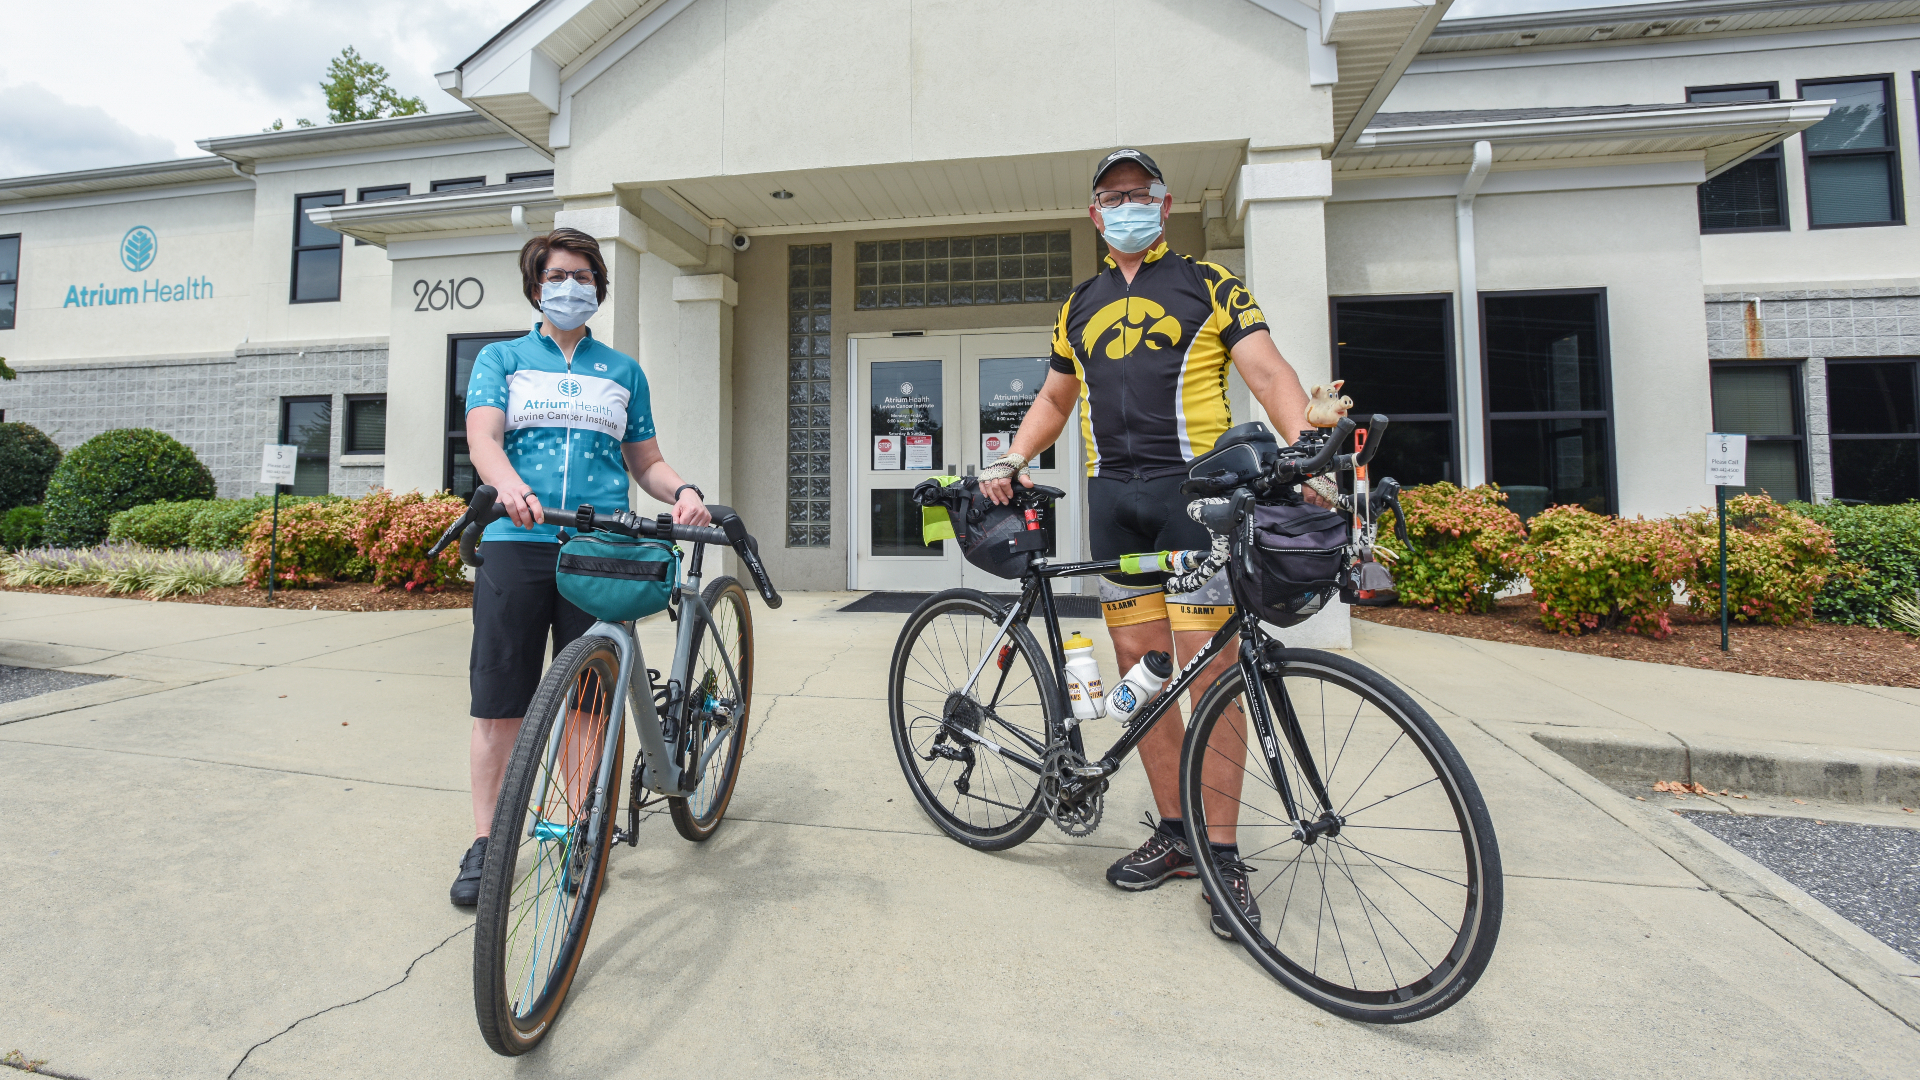 Ron Wasek, a patient at Levine Cancer Institute, isn't letting metastatic prostate cancer slow him down. The 63-year-old grandfather of eight recently completed a 468-mile bike ride across Iowa, in just 7 days, exactly one year after his diagnosis.